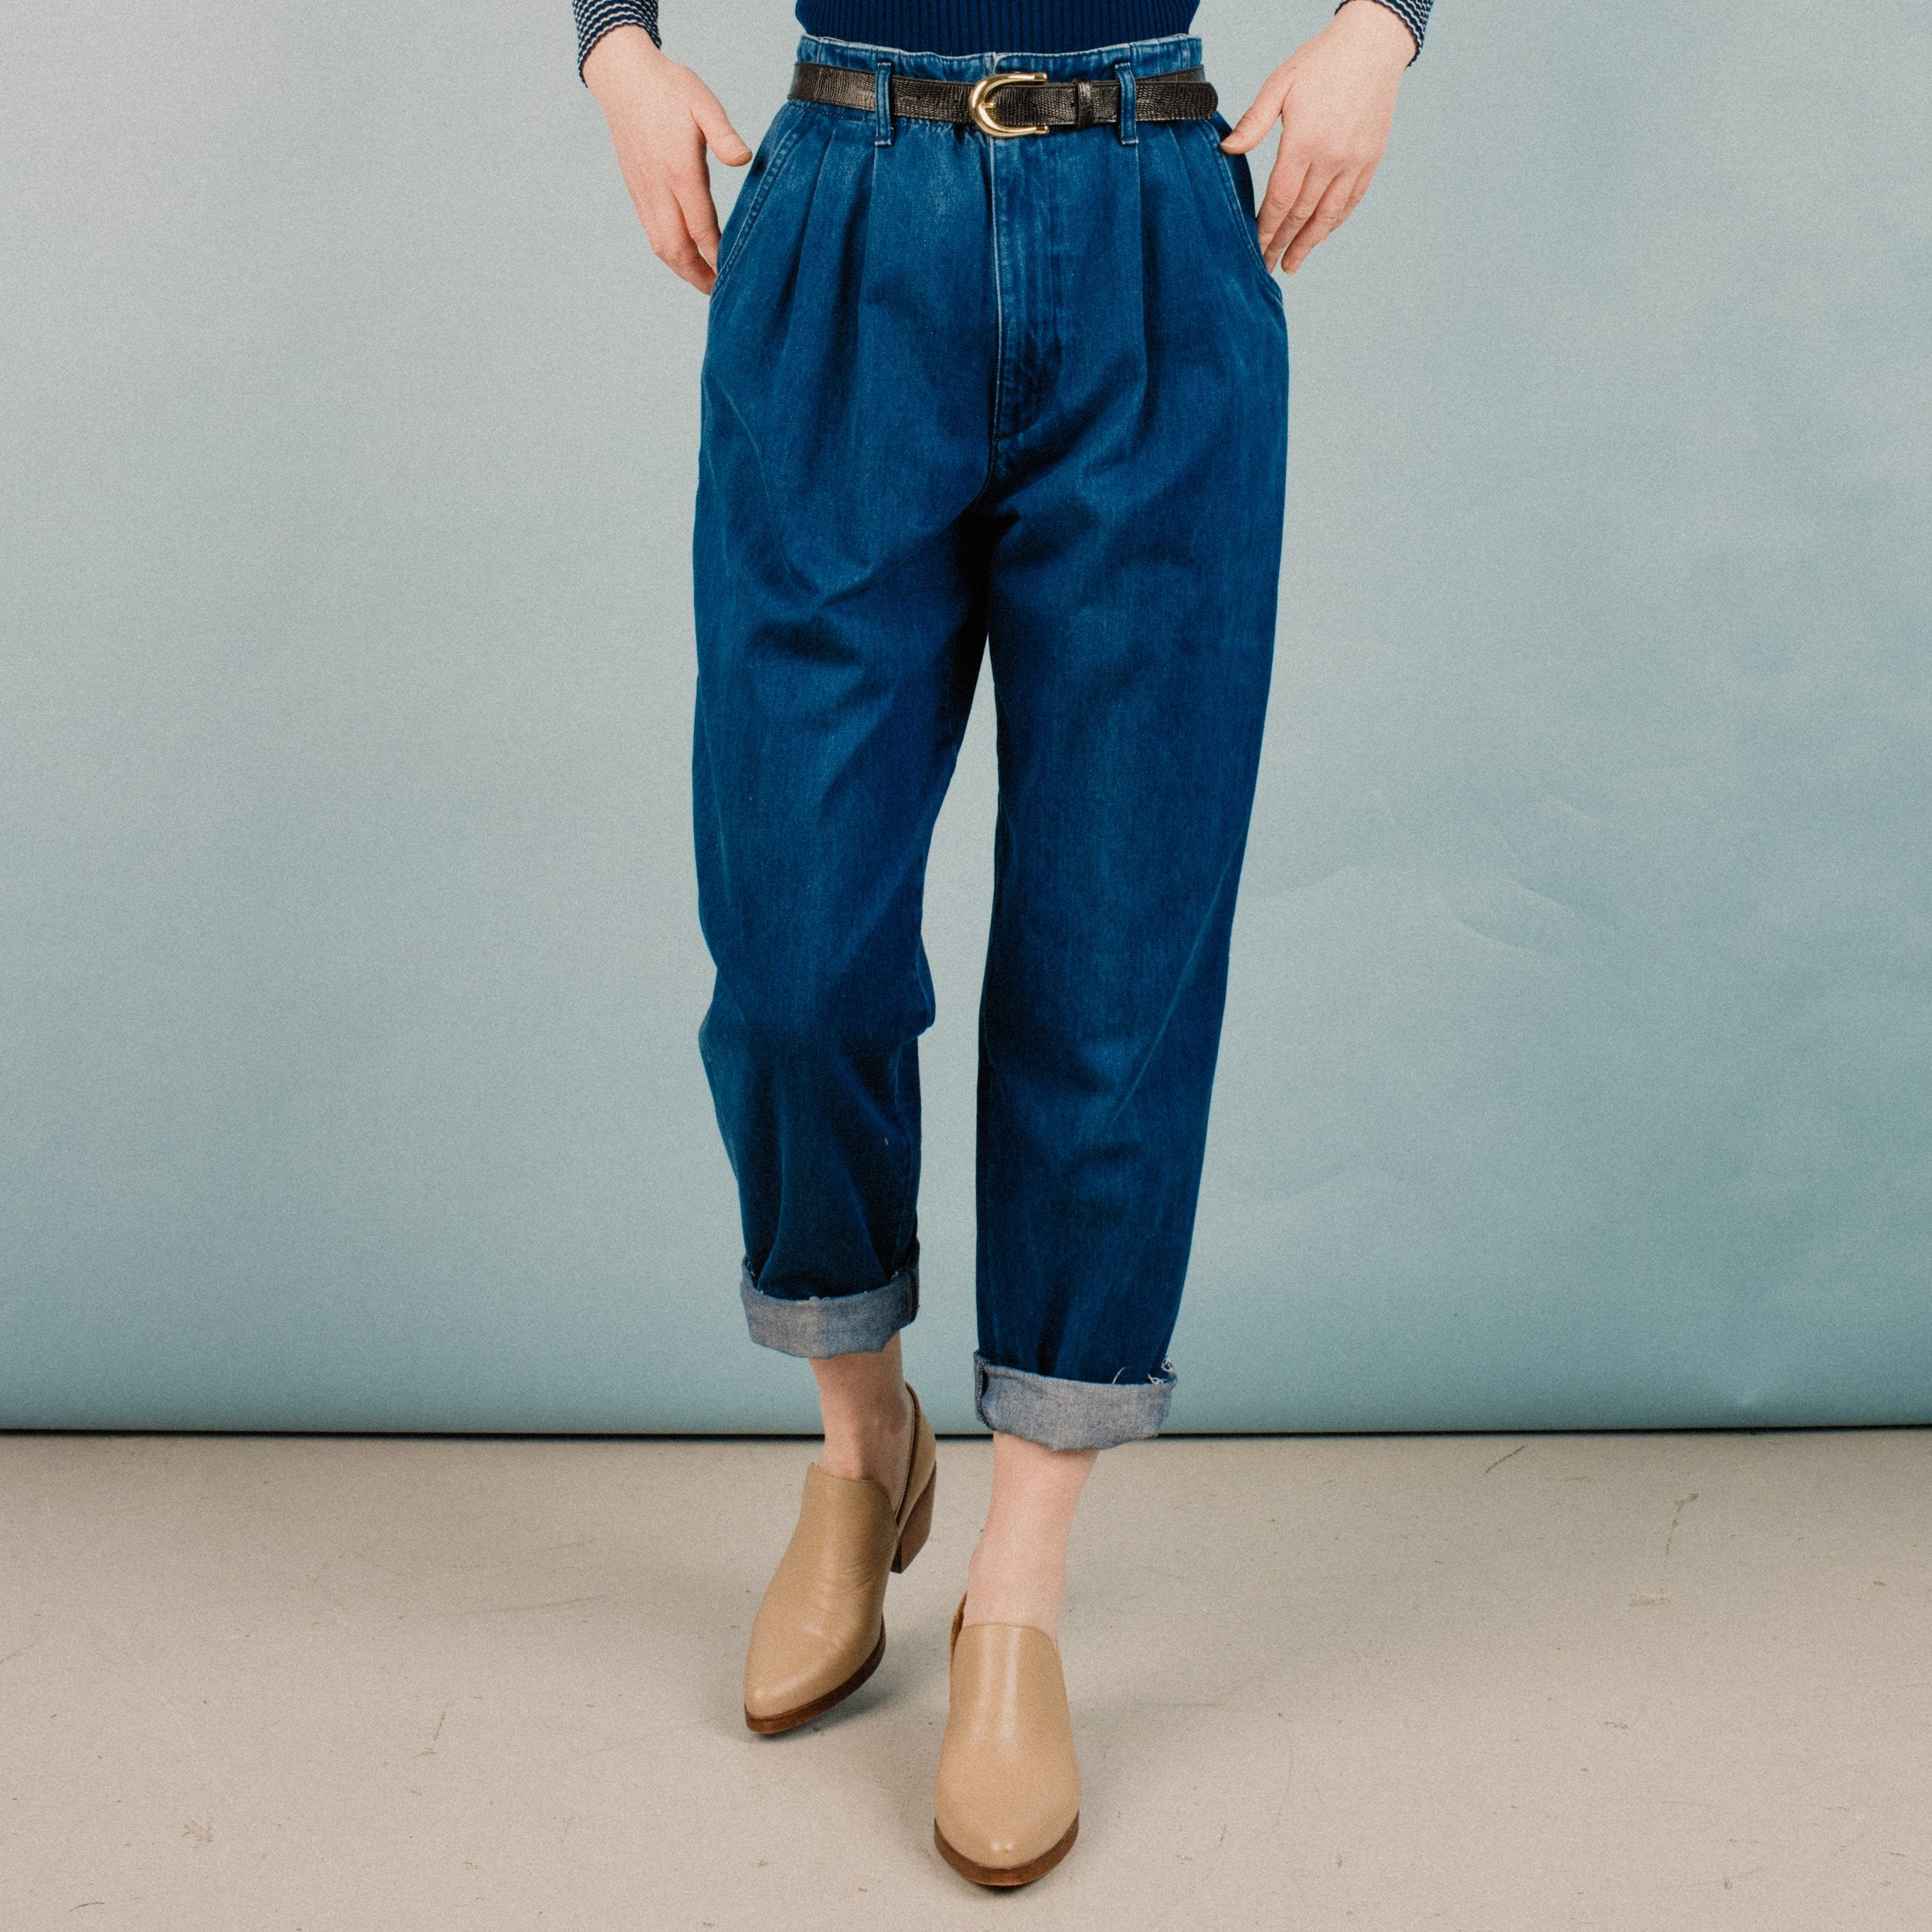 Vintage Dark Wash Denim Pants / S/M